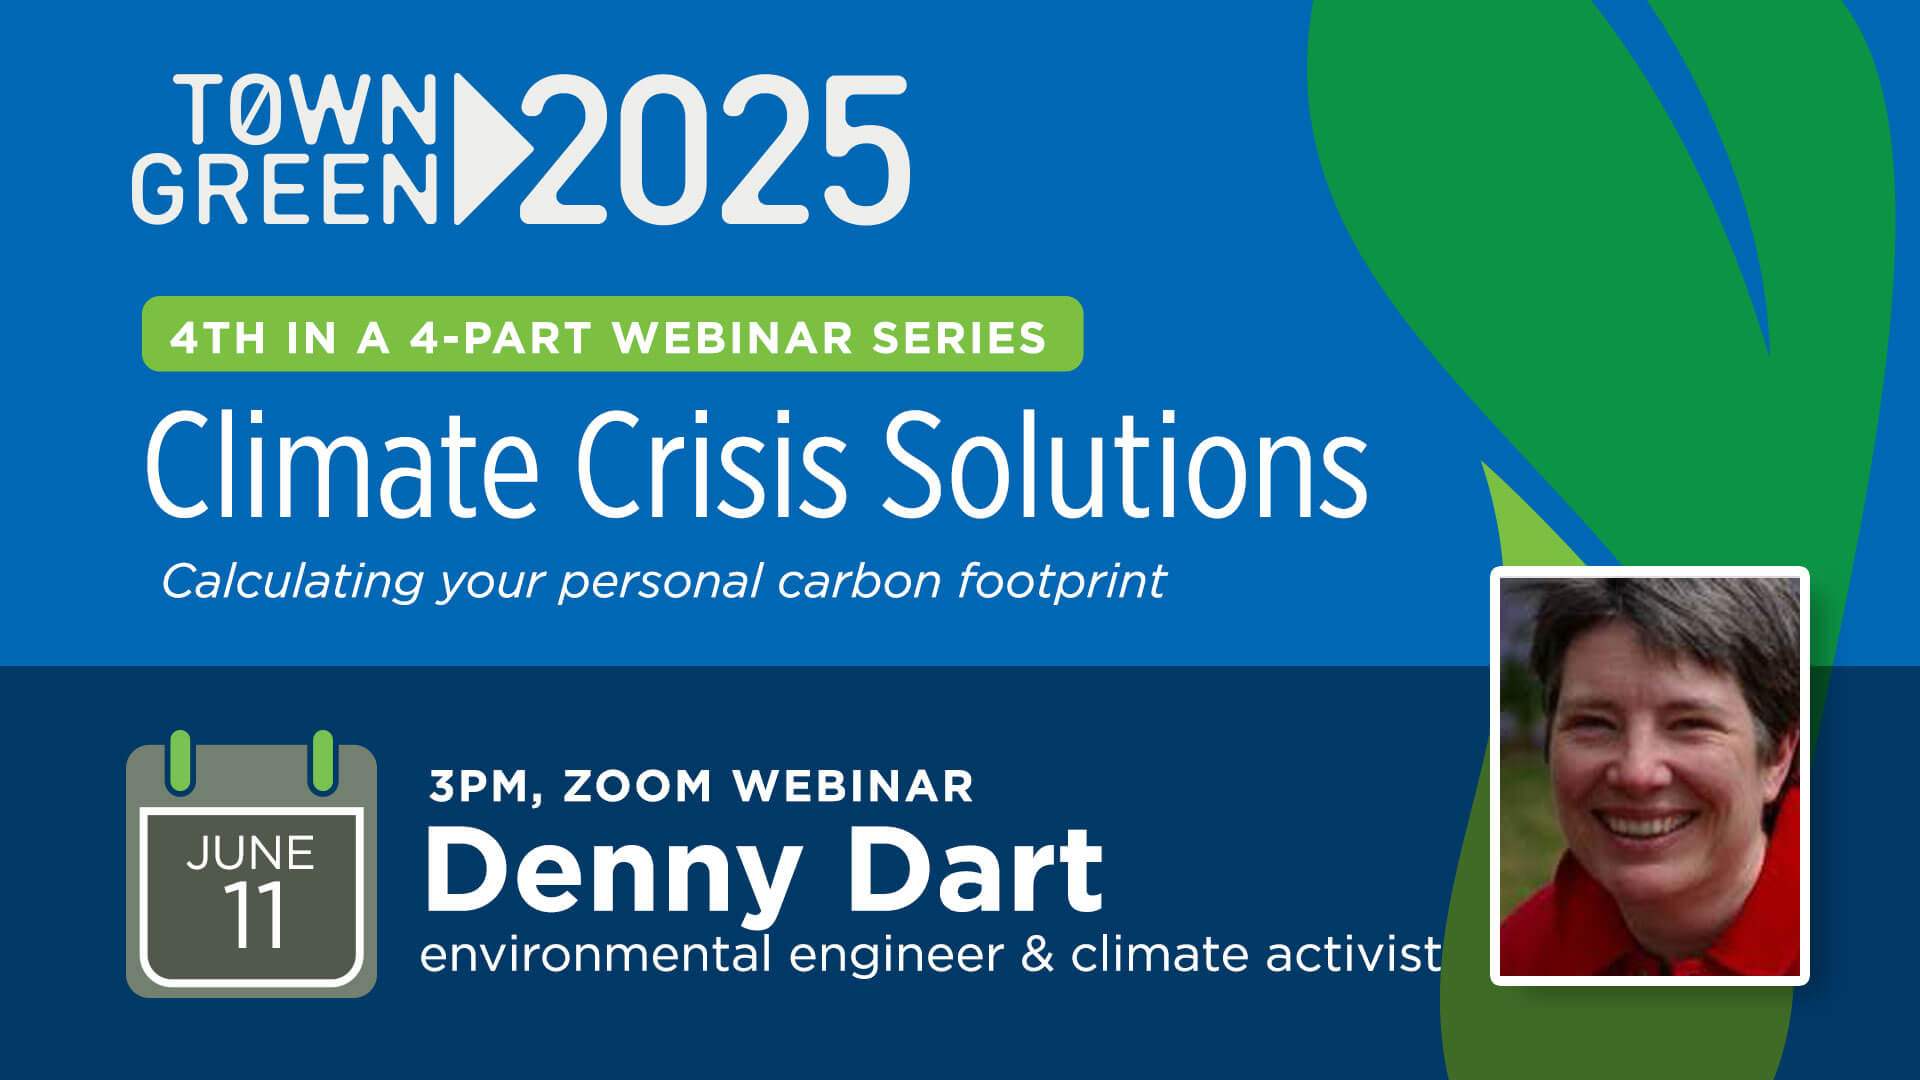 TownGreen2025 Climate Crisis Solutions: Denny Dart